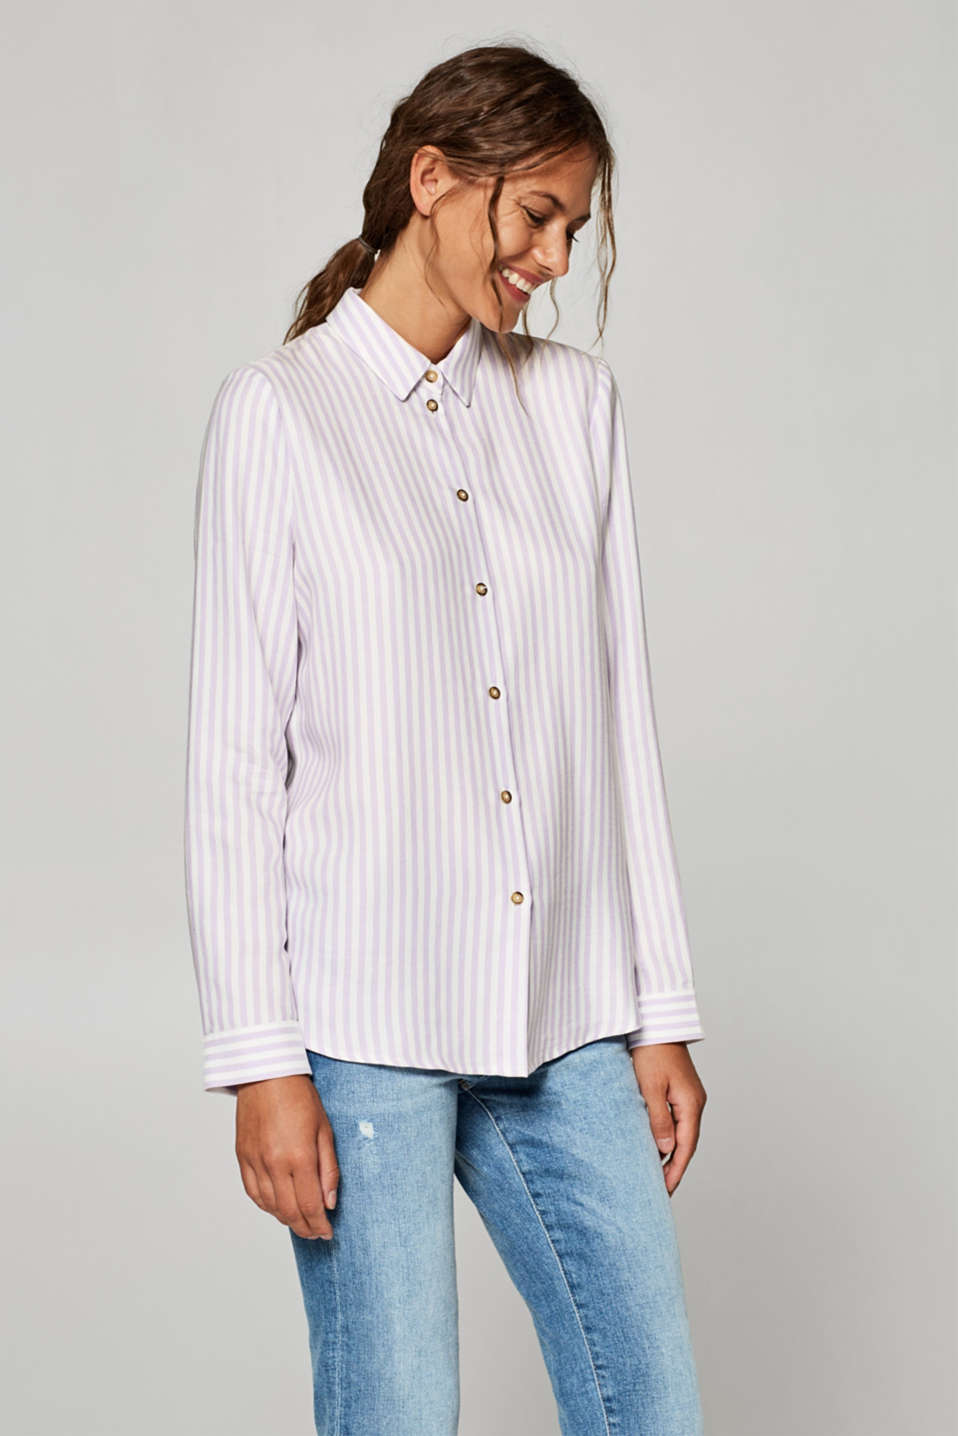 Esprit - Shirt blouse with vertical stripes